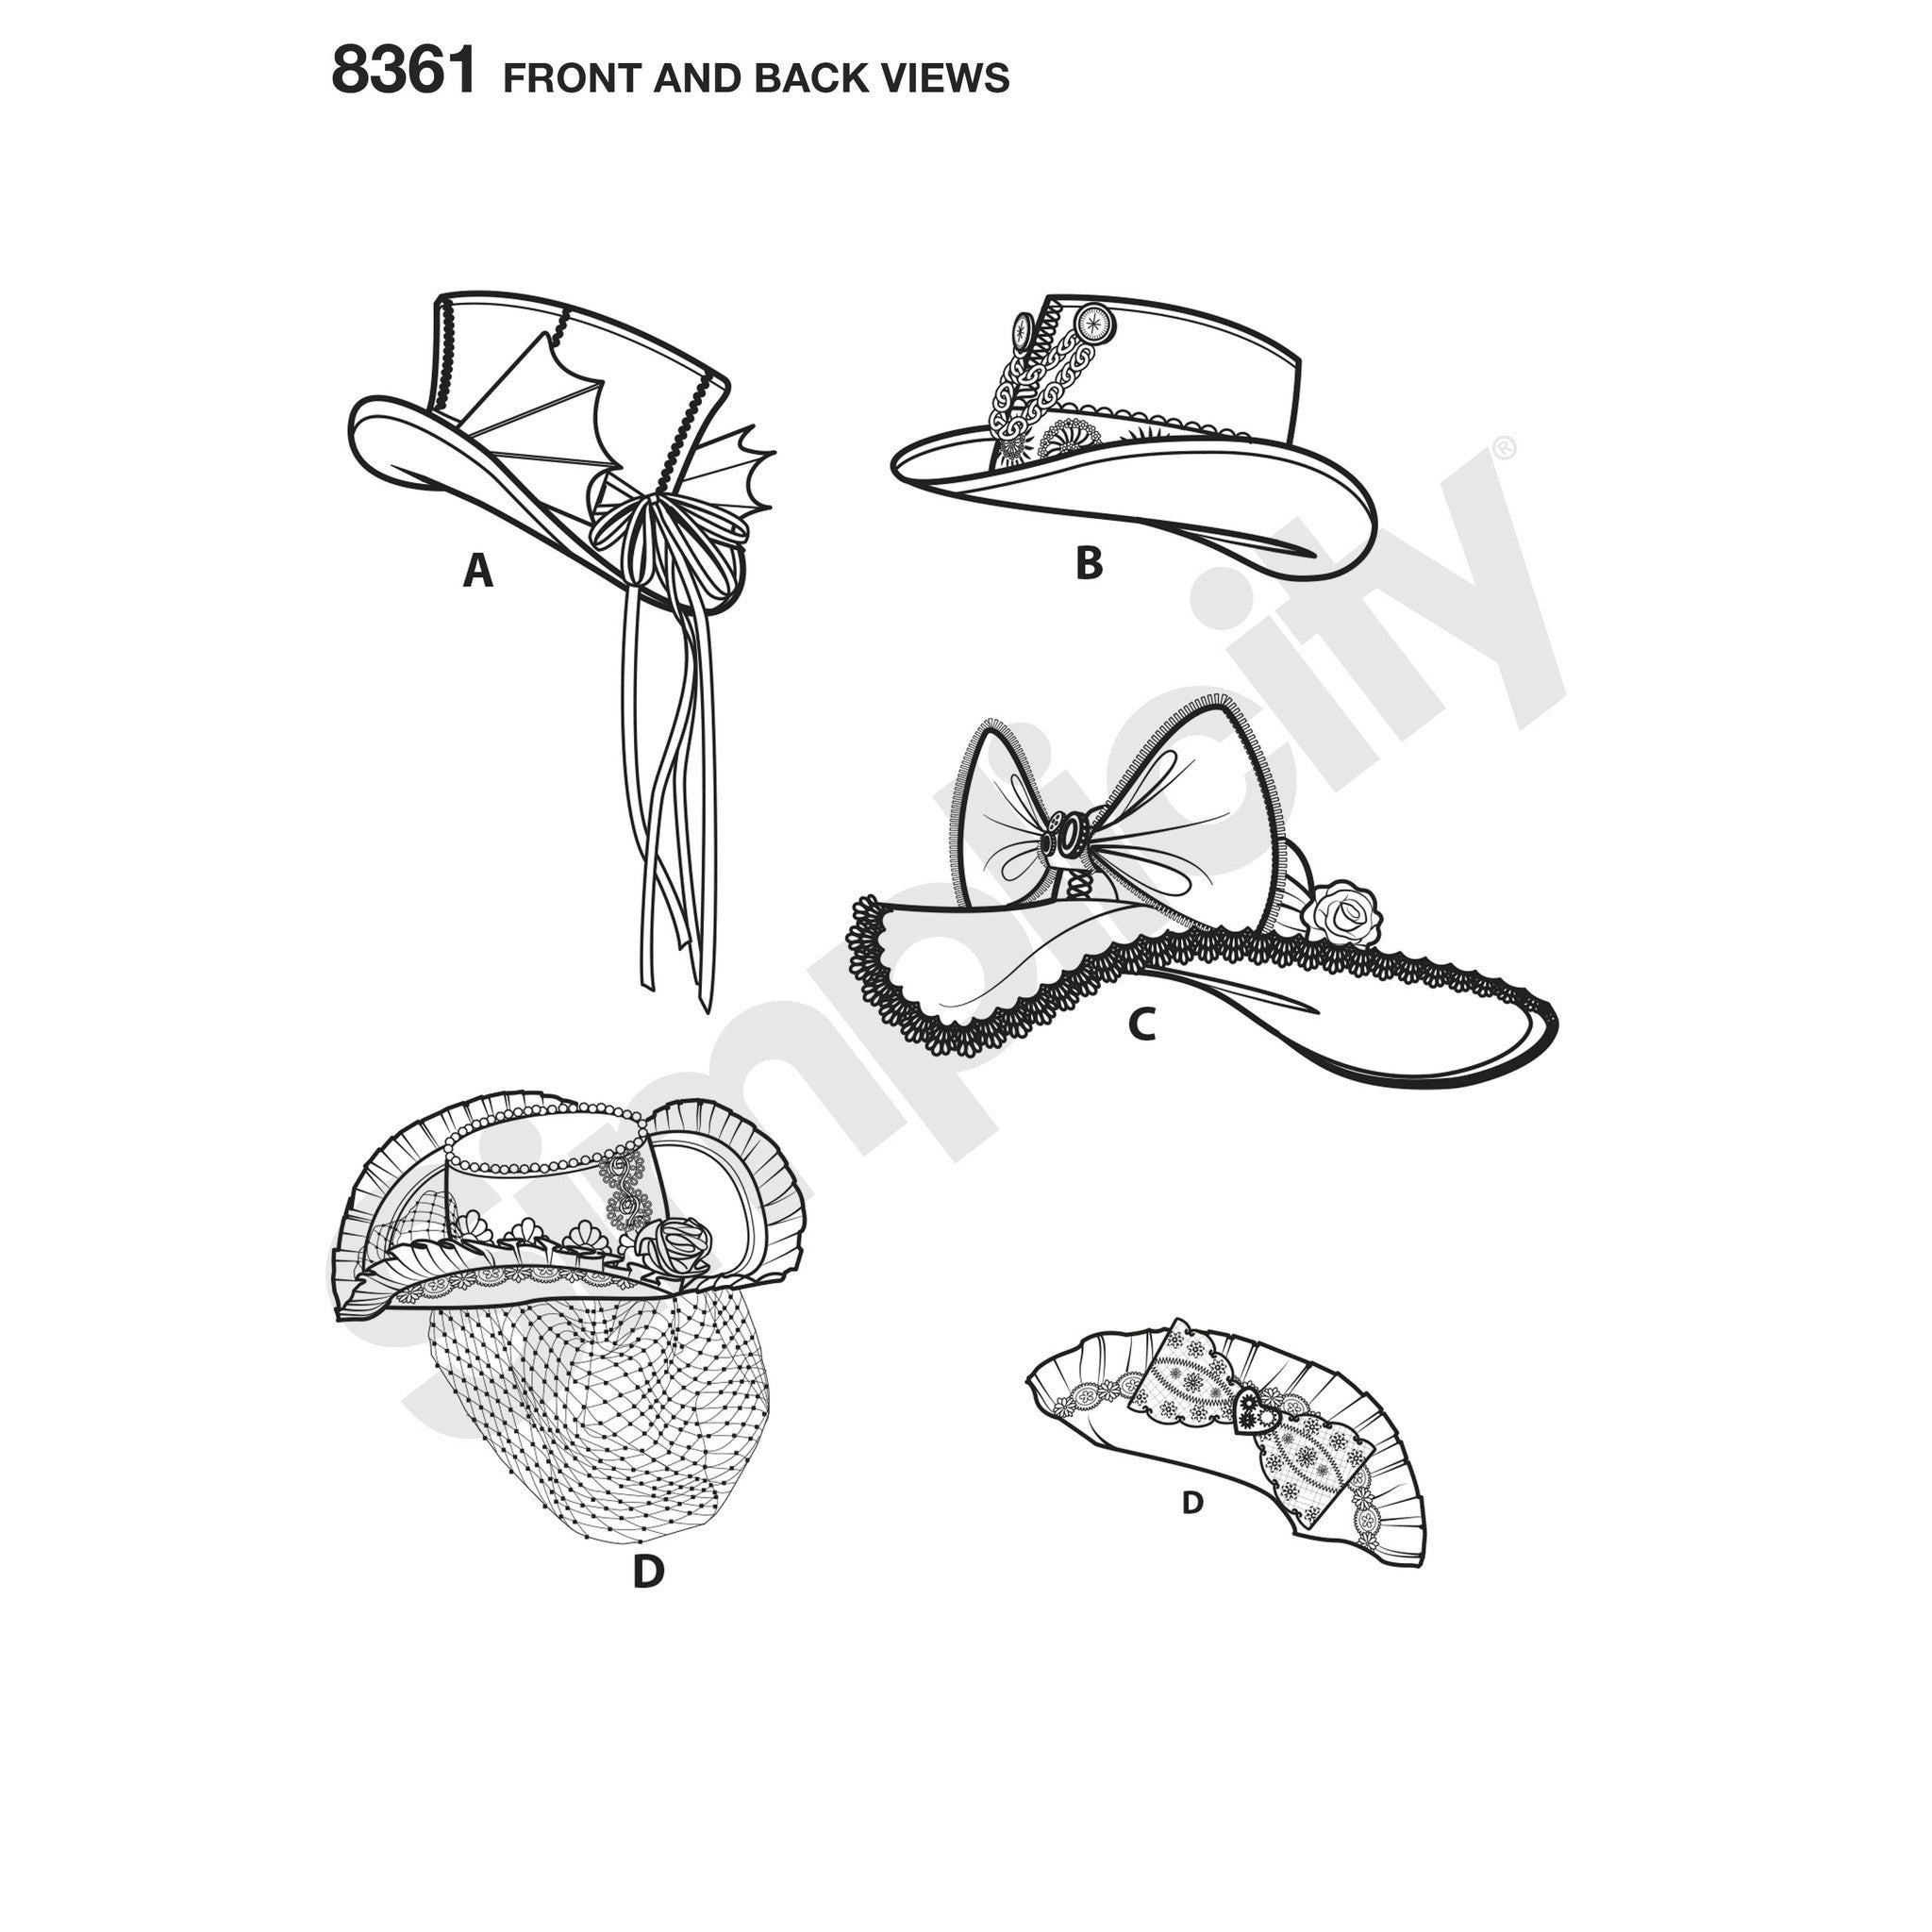 S8361 Hats in Three Sizes | by Arkivestry